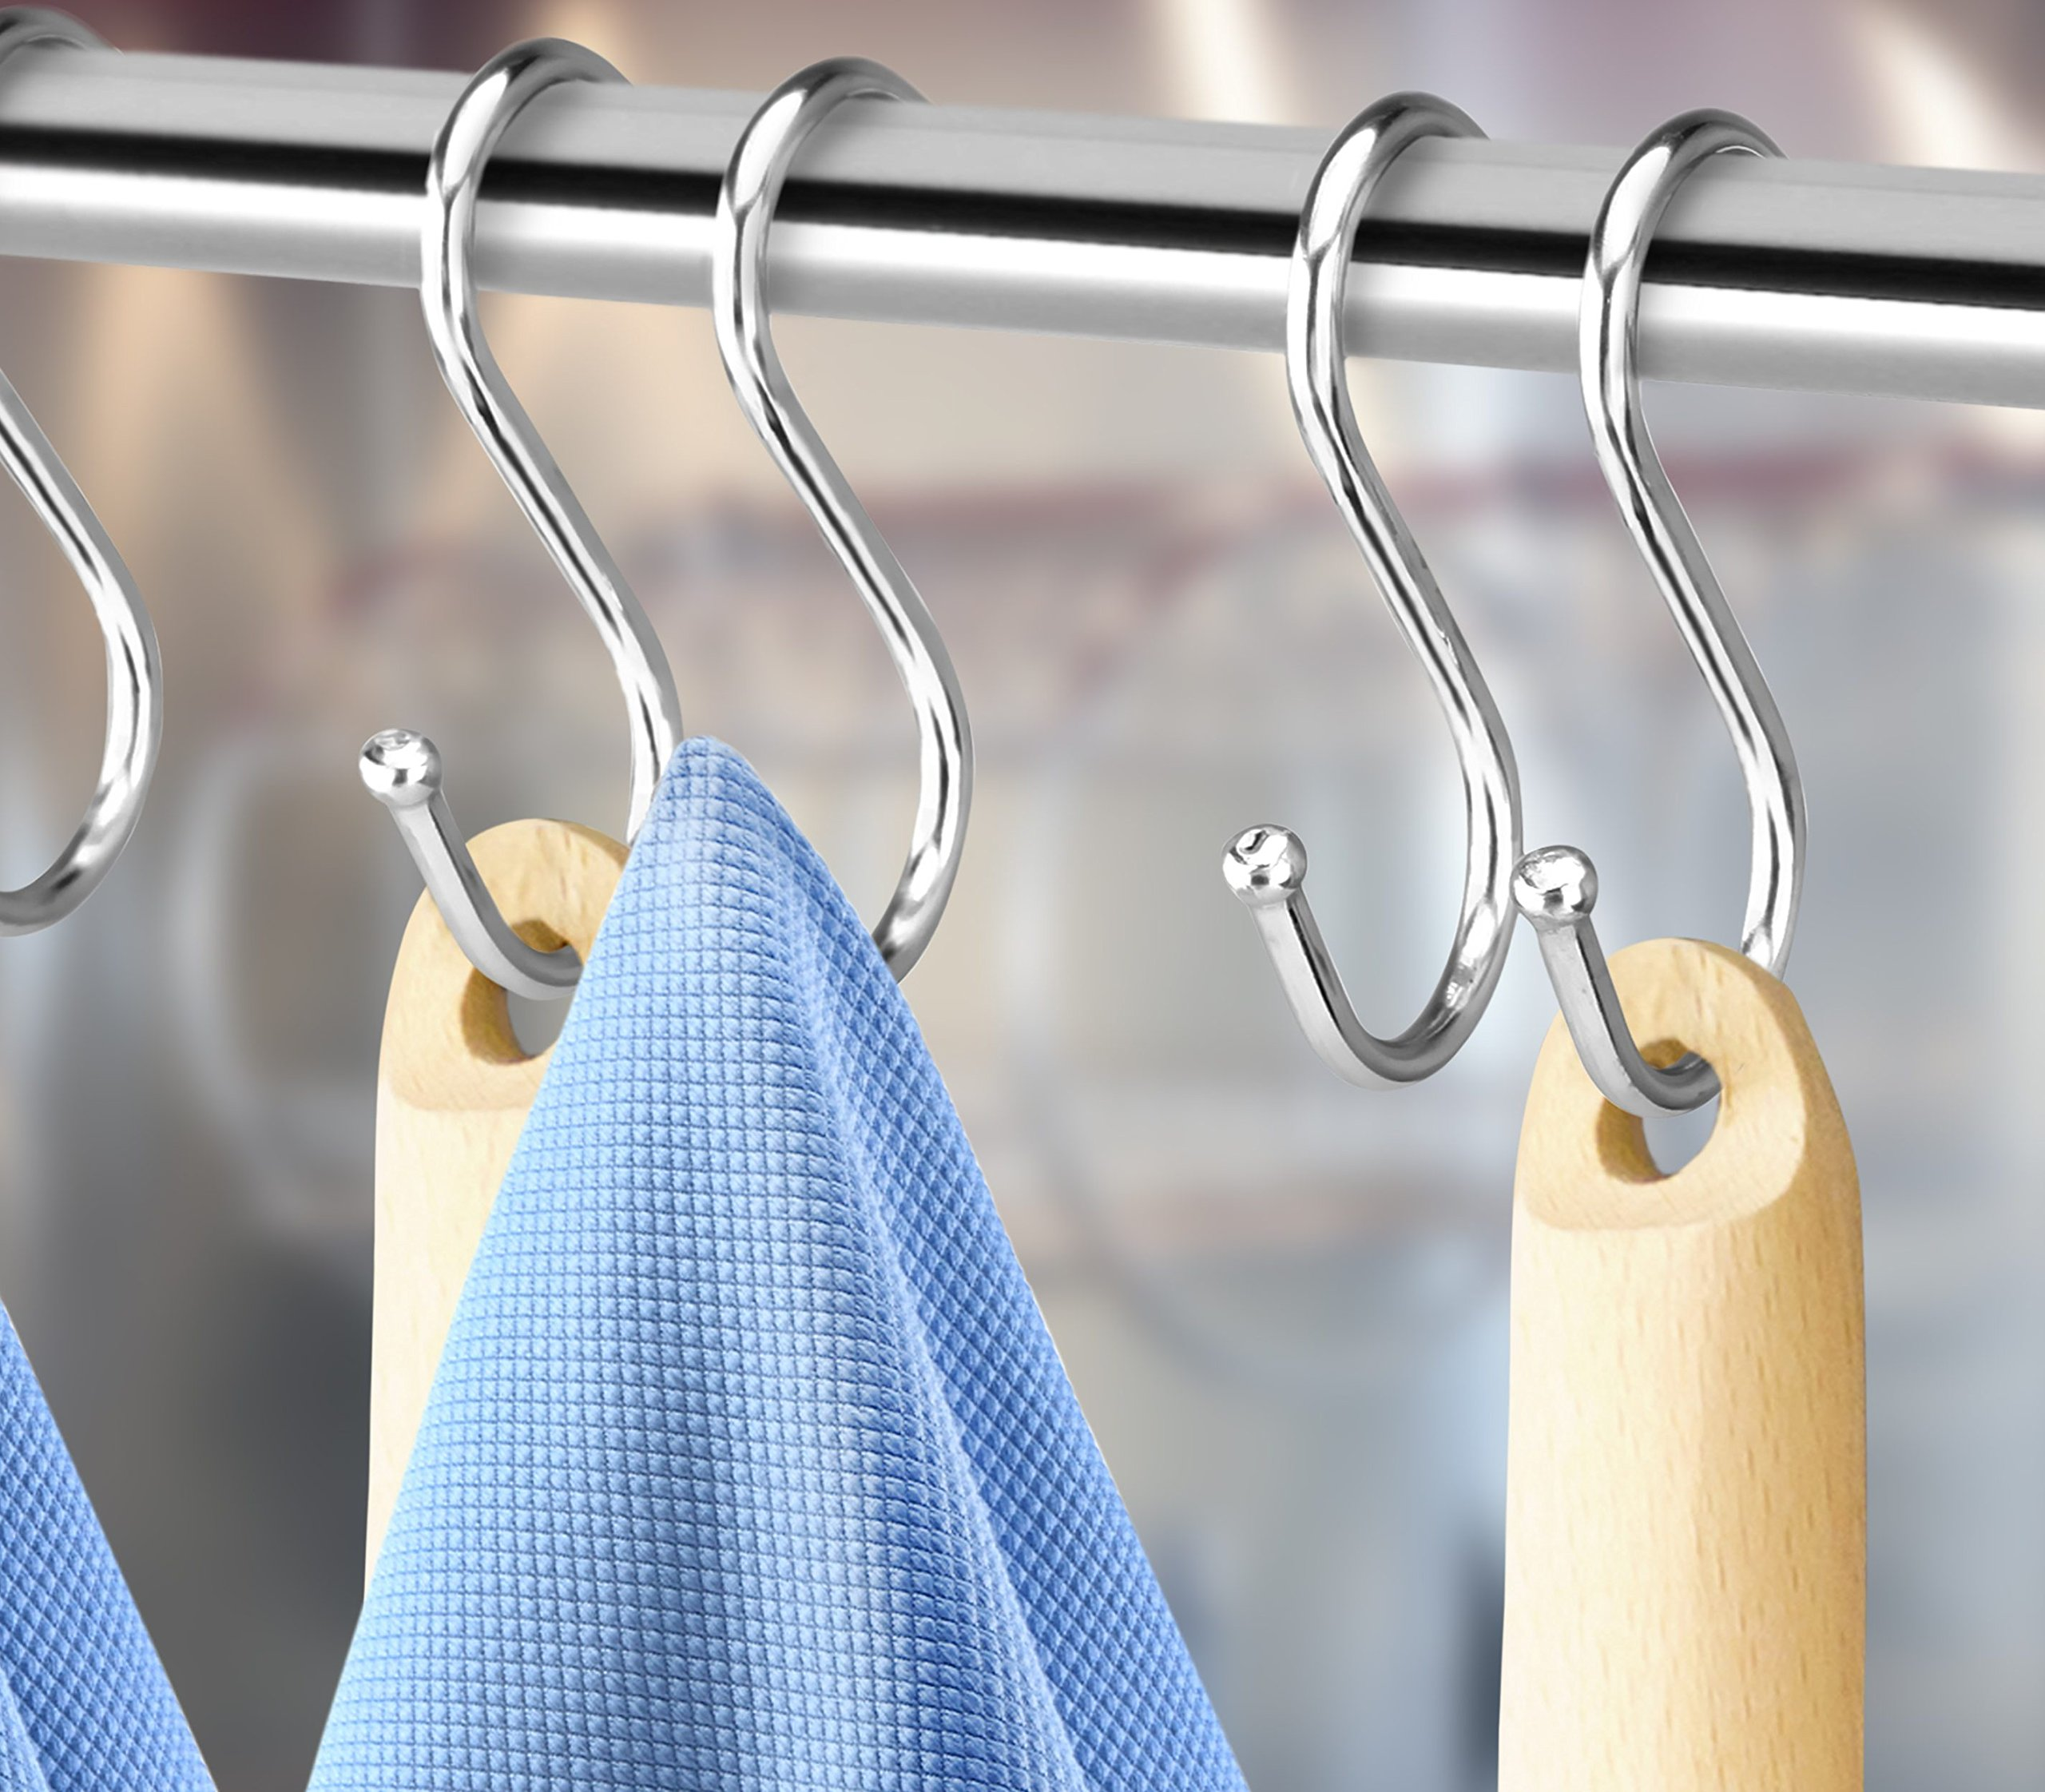 Pro Chef Kitchen Tools Double Utility Hooks - Dual S Hook 10 Pack Set - Hanging S Shaped Heavy Duty Metal Hooks for Outdoor Garage Home Storage Organization - Fits Utensil Rack Rails - Pot Hanger Bar